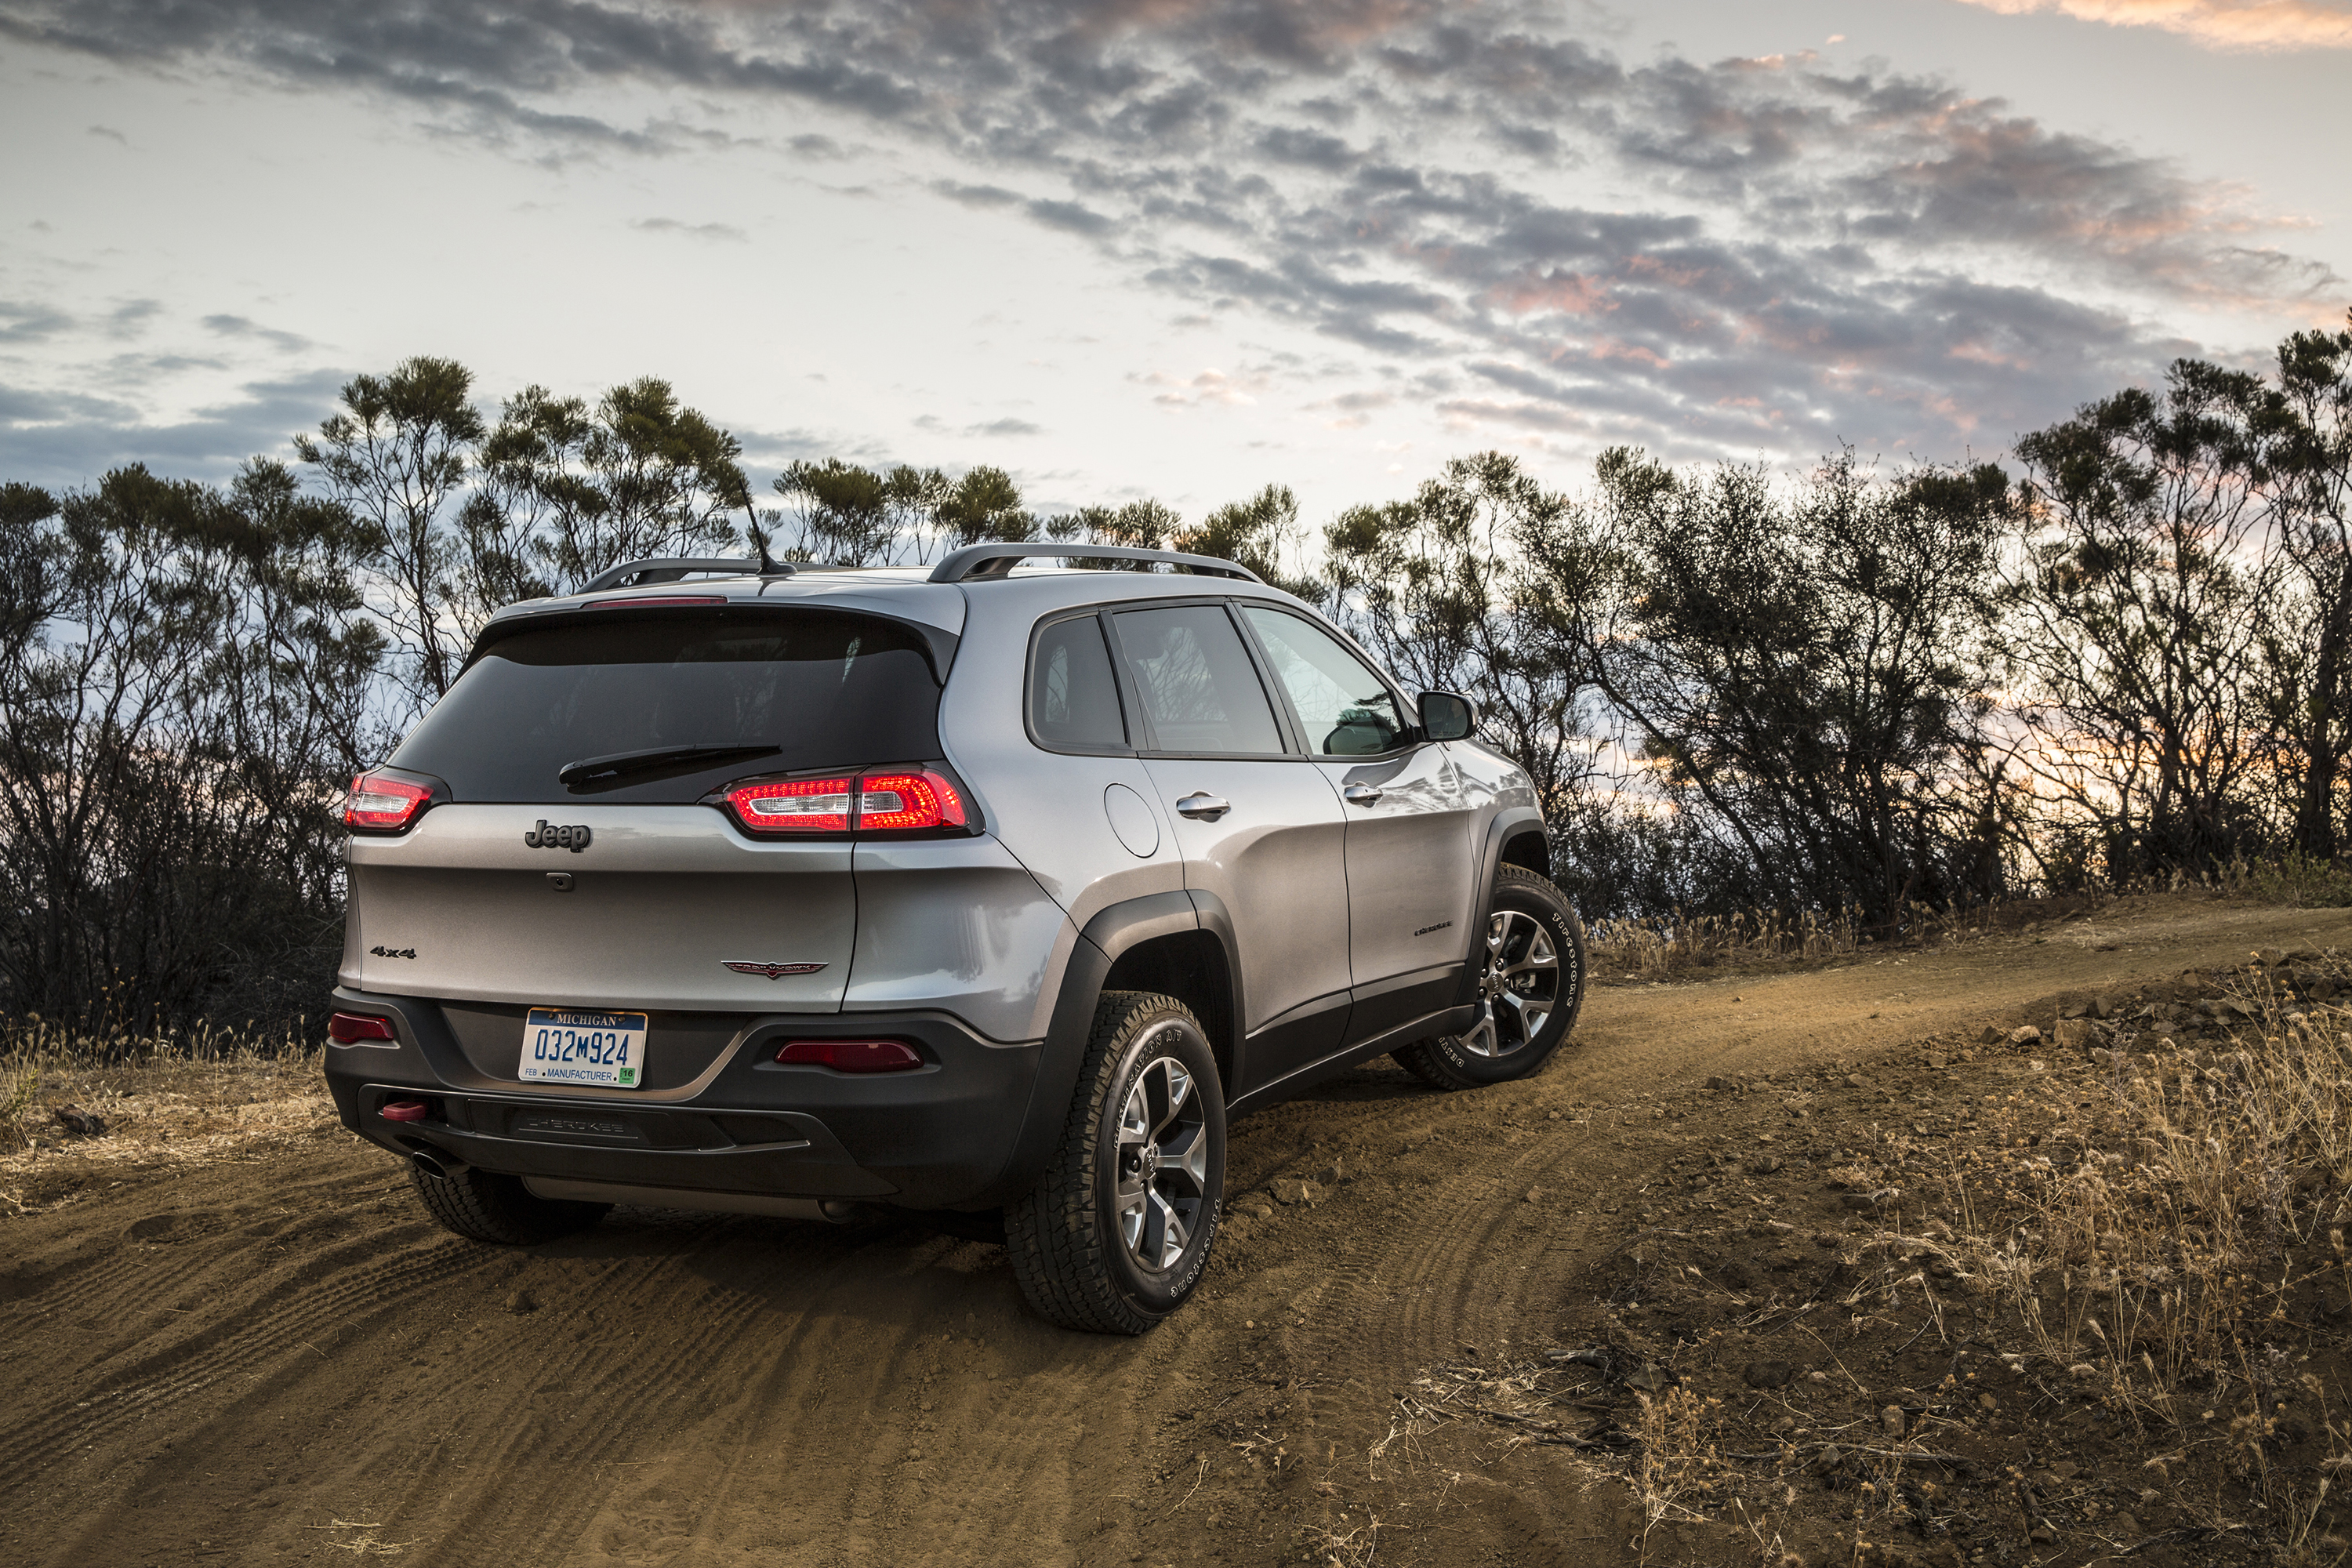 2014 jeep cherokee trailhawk excellent for going off road or off script gaywheels. Black Bedroom Furniture Sets. Home Design Ideas